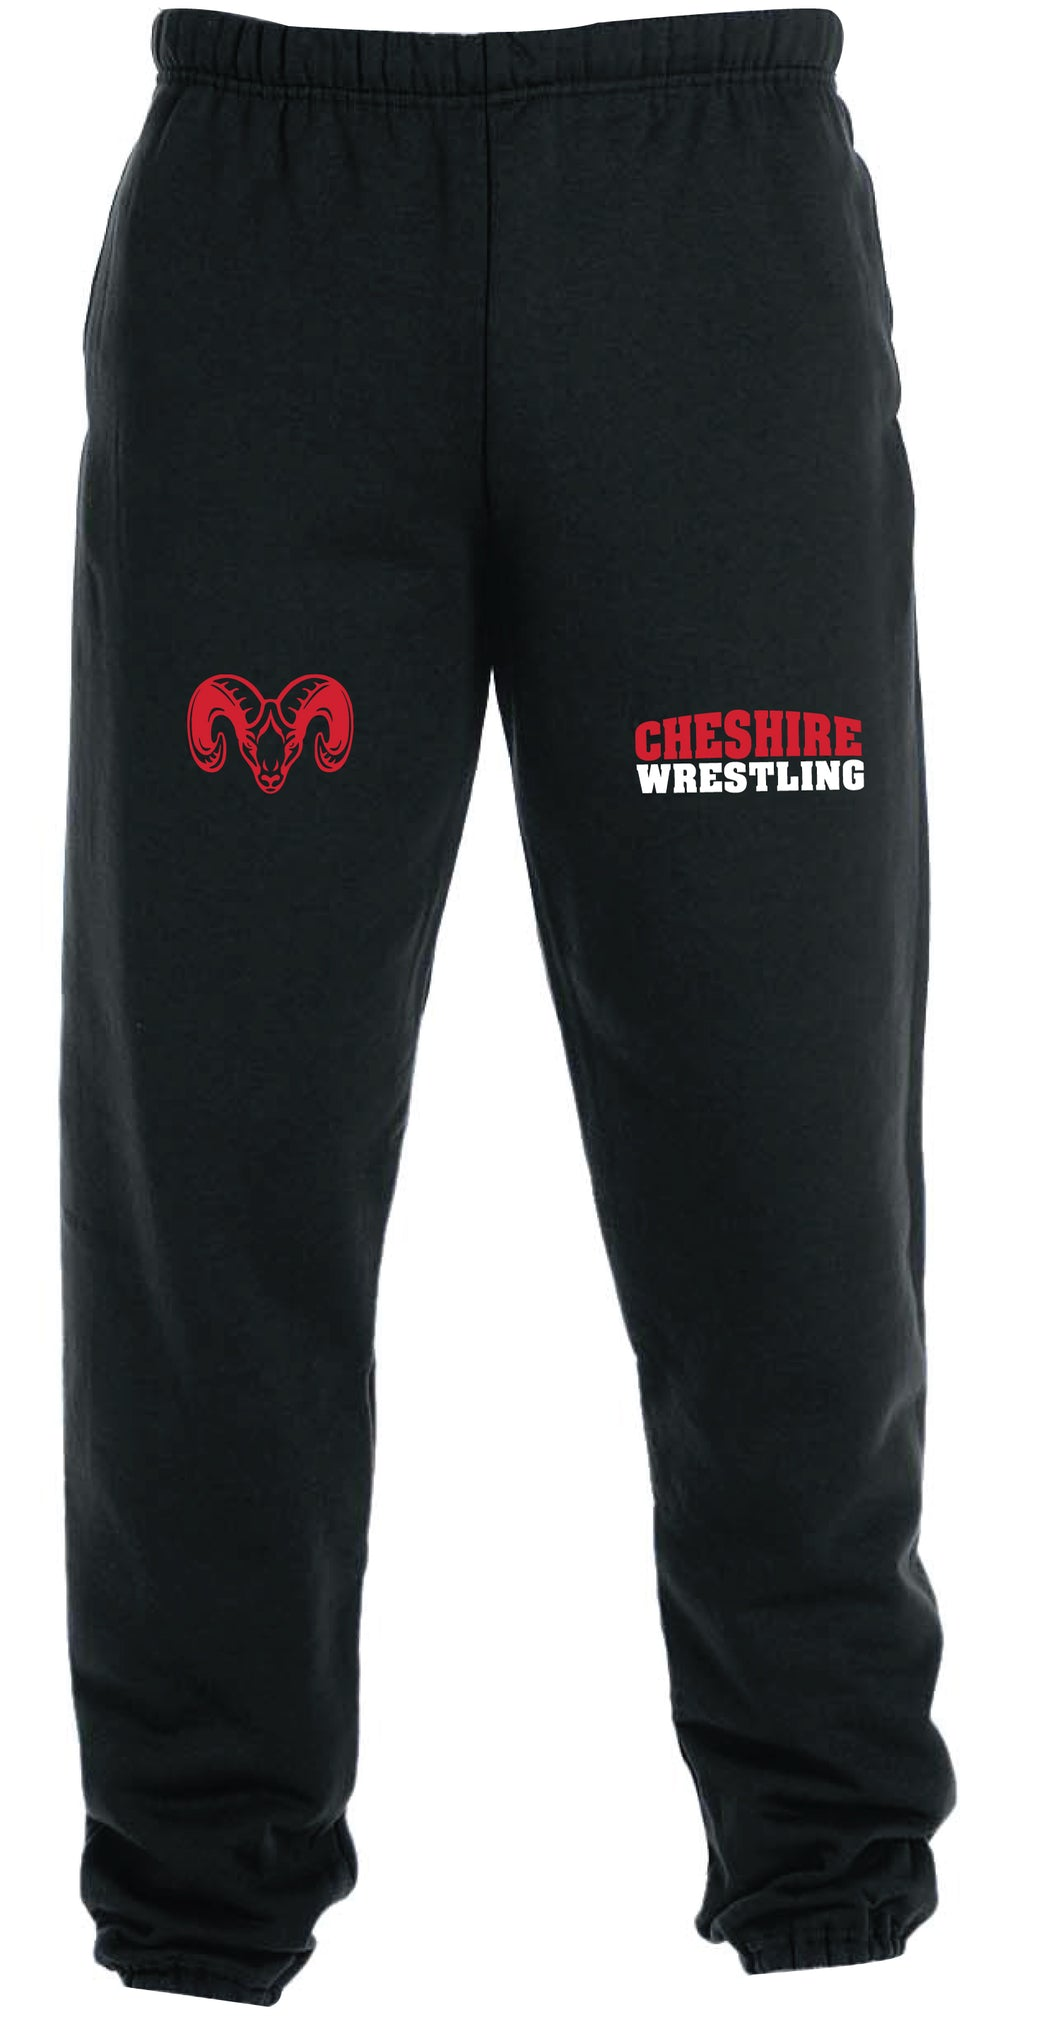 newest selection official price 100% top quality Cheshire Rams Cotton Sweatpants - Black